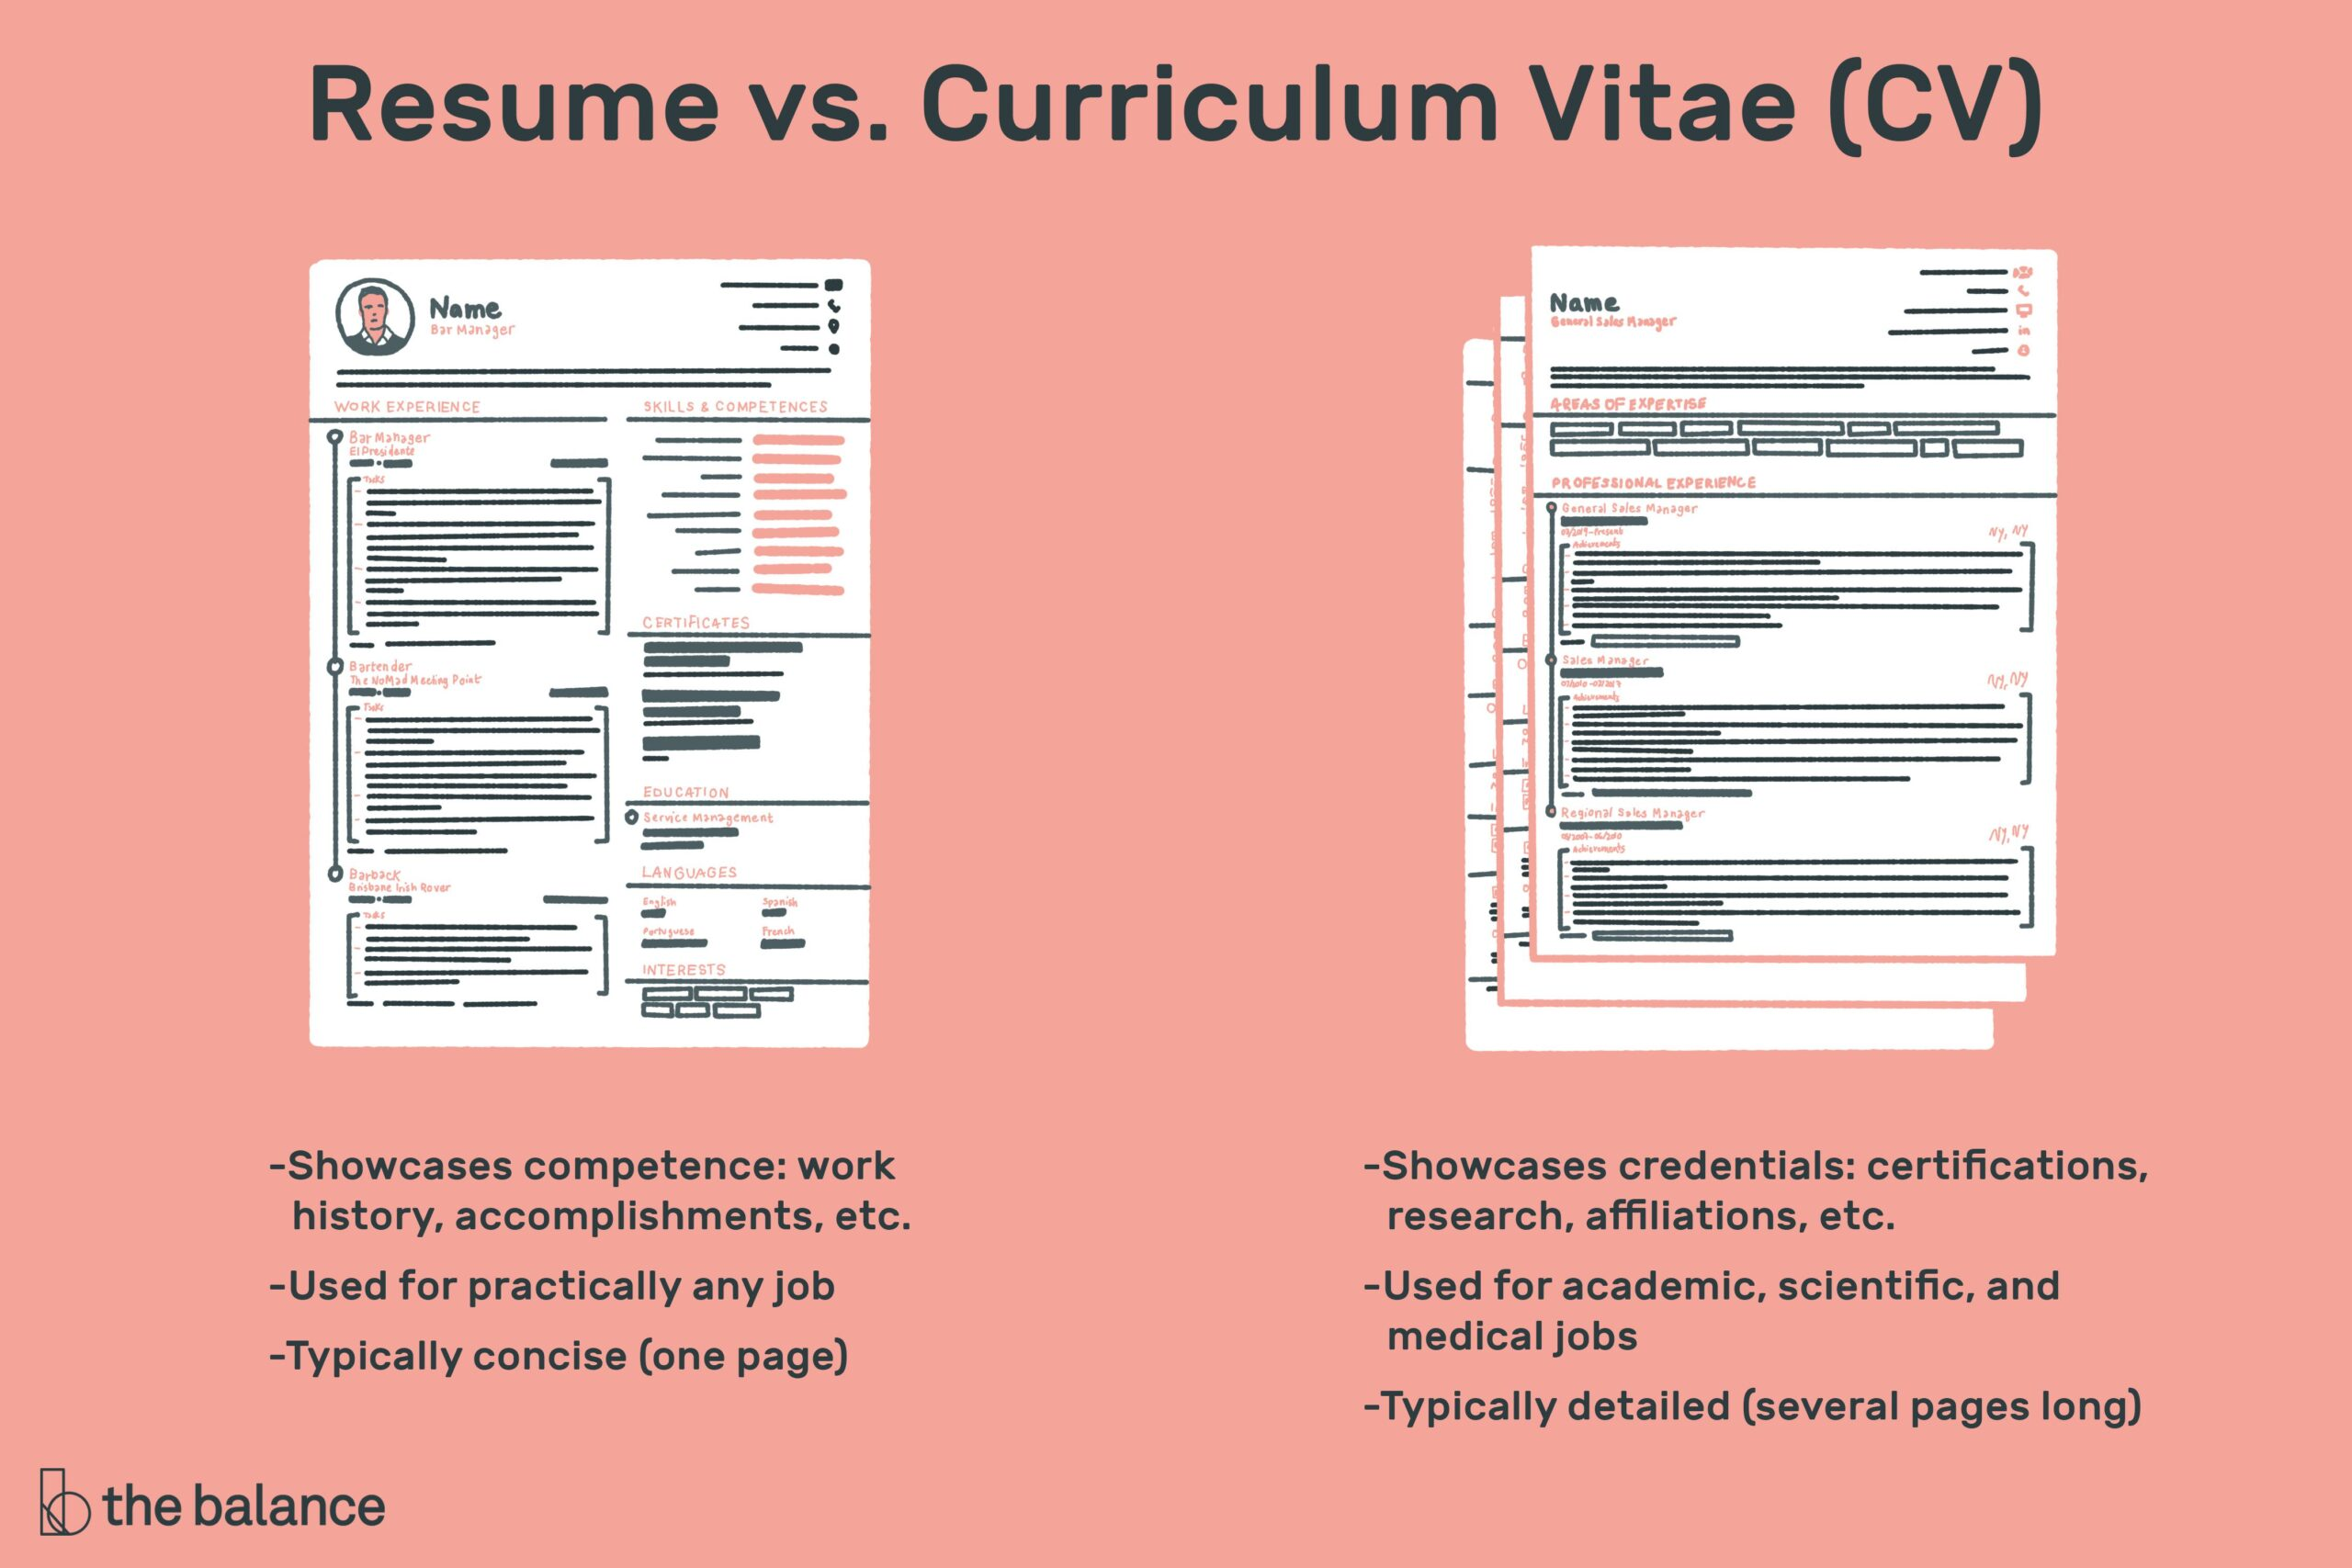 the difference between resume and curriculum vitae professional definition cv vs final Resume Professional Resume Definition